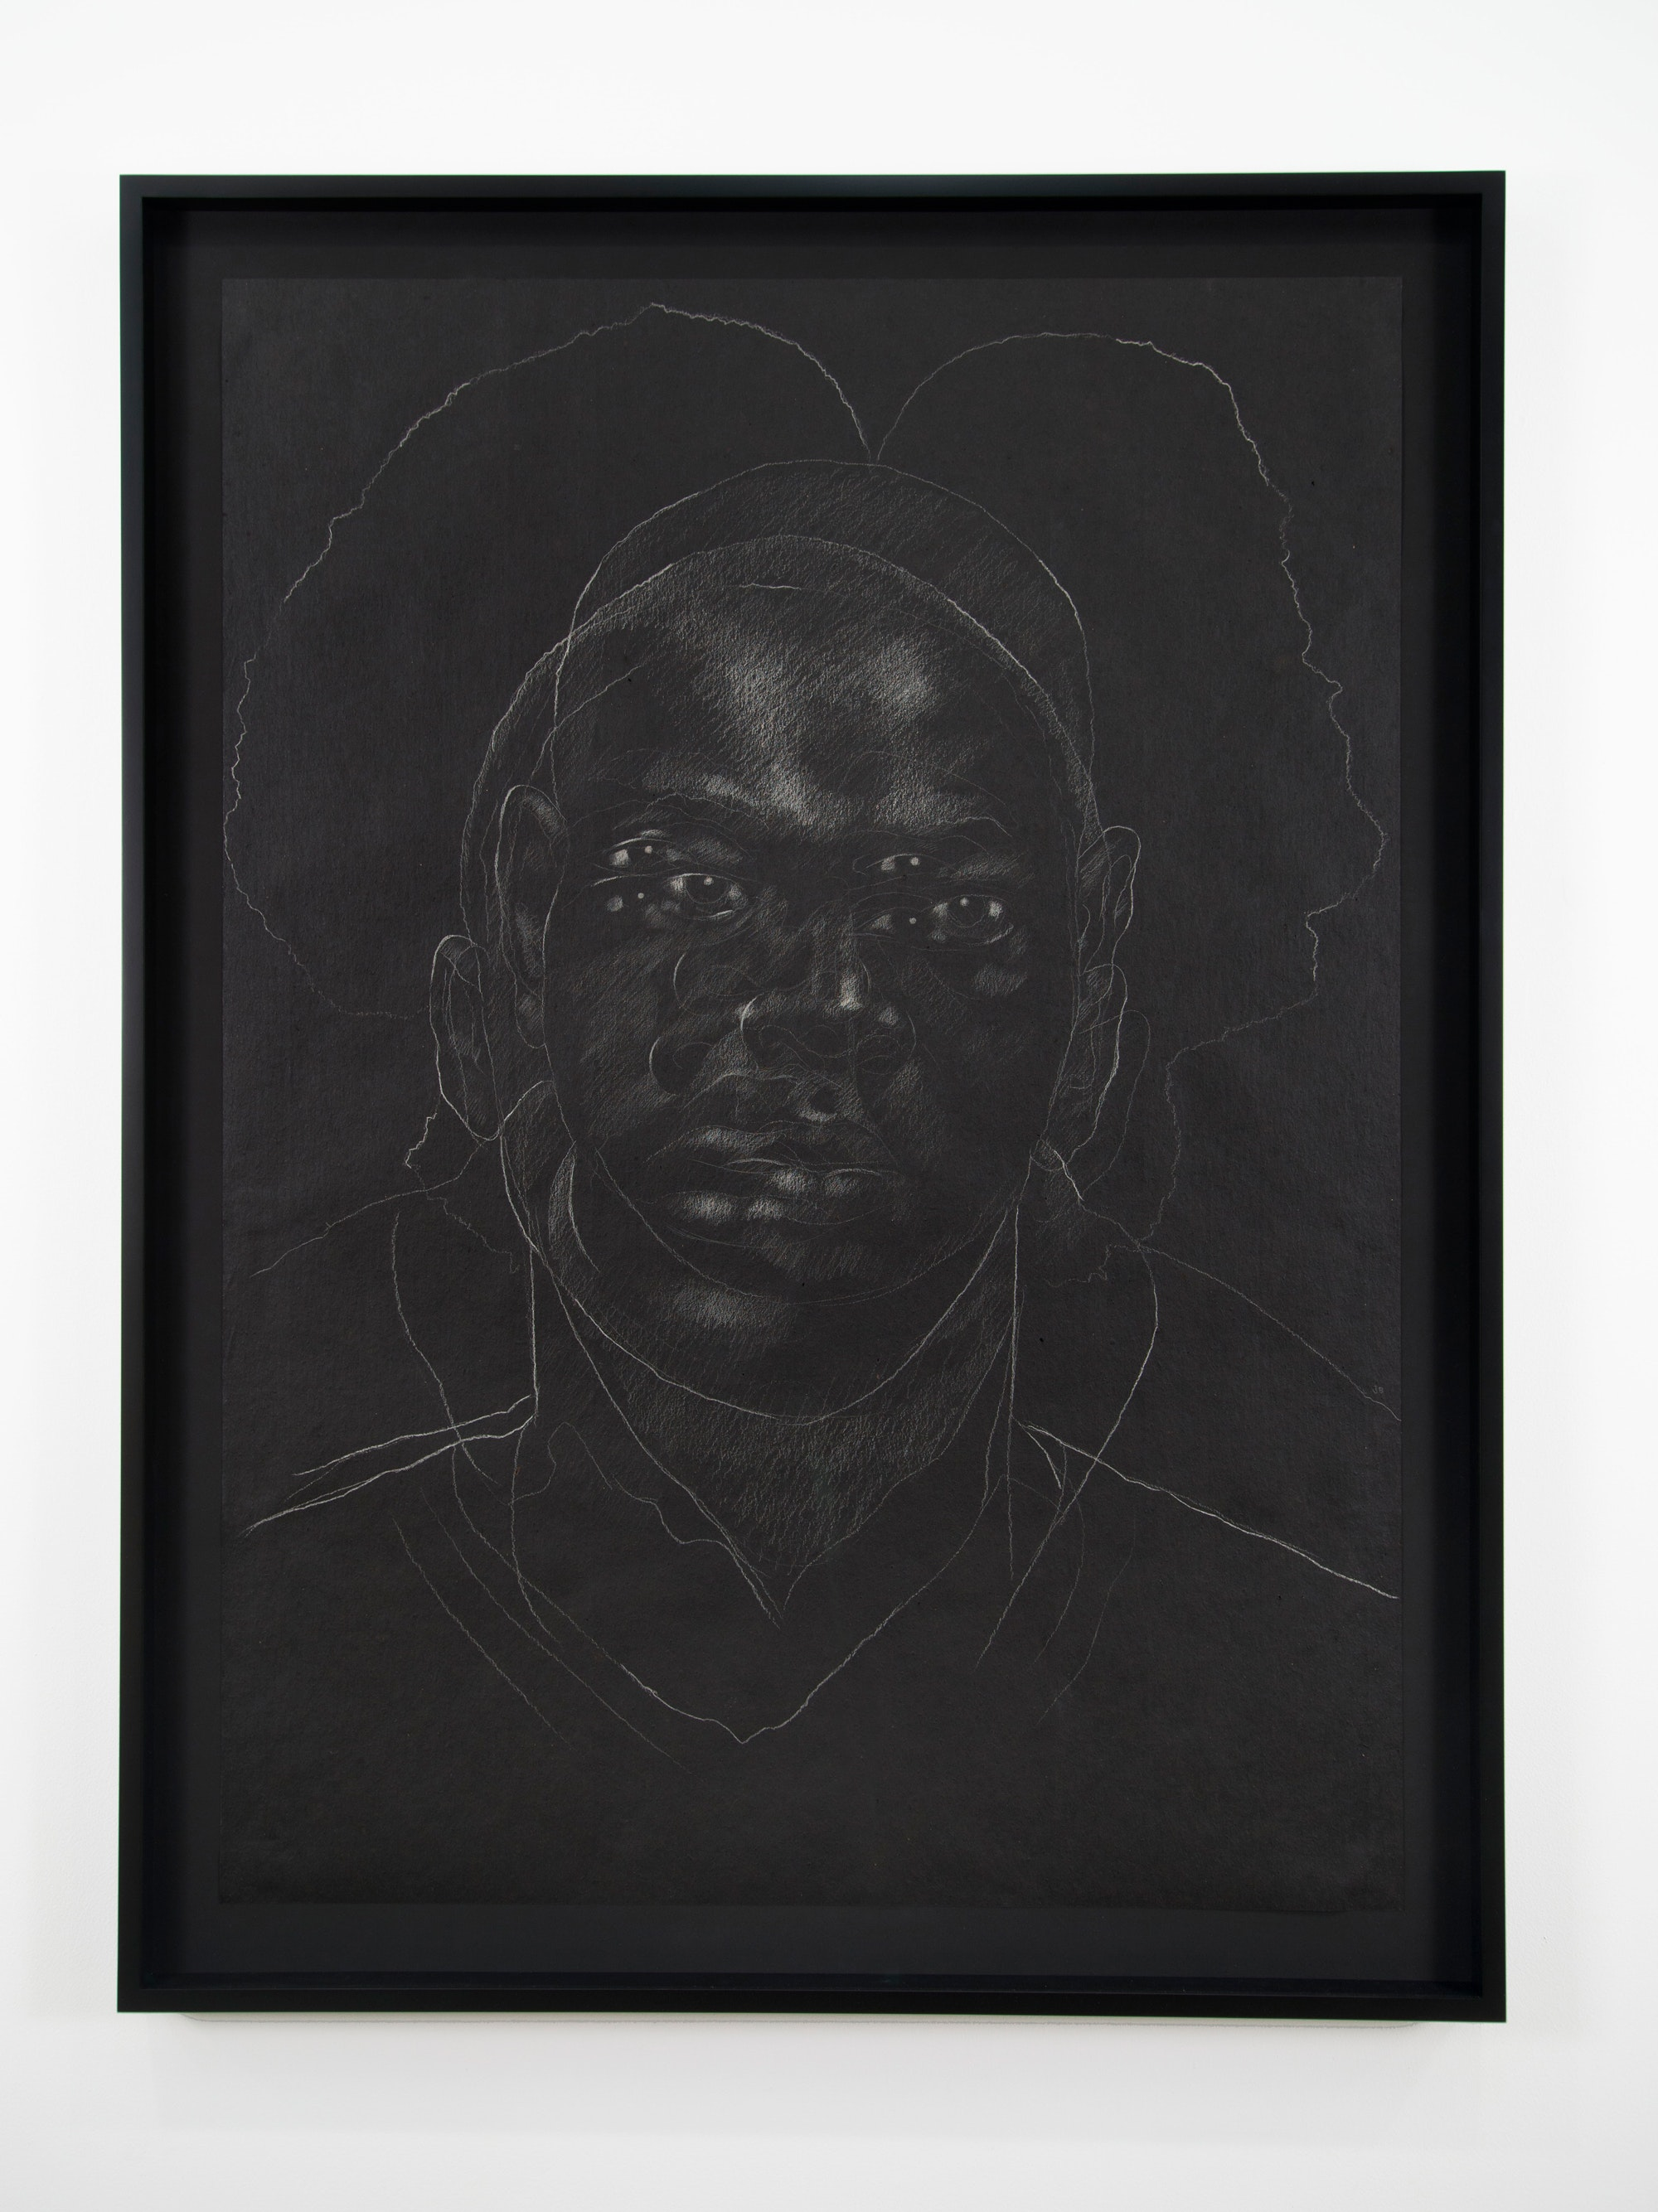 Titus Kaphar, <em>The Jerome Project (Asphalt and Chalk) II</em>, 2014, Chalk on asphalt paper, 49 x 35 1/2 inches (drawing), 54 3/8 x 40 7/8 x 2 1/8 inches (framed), Image courtesy the artist.